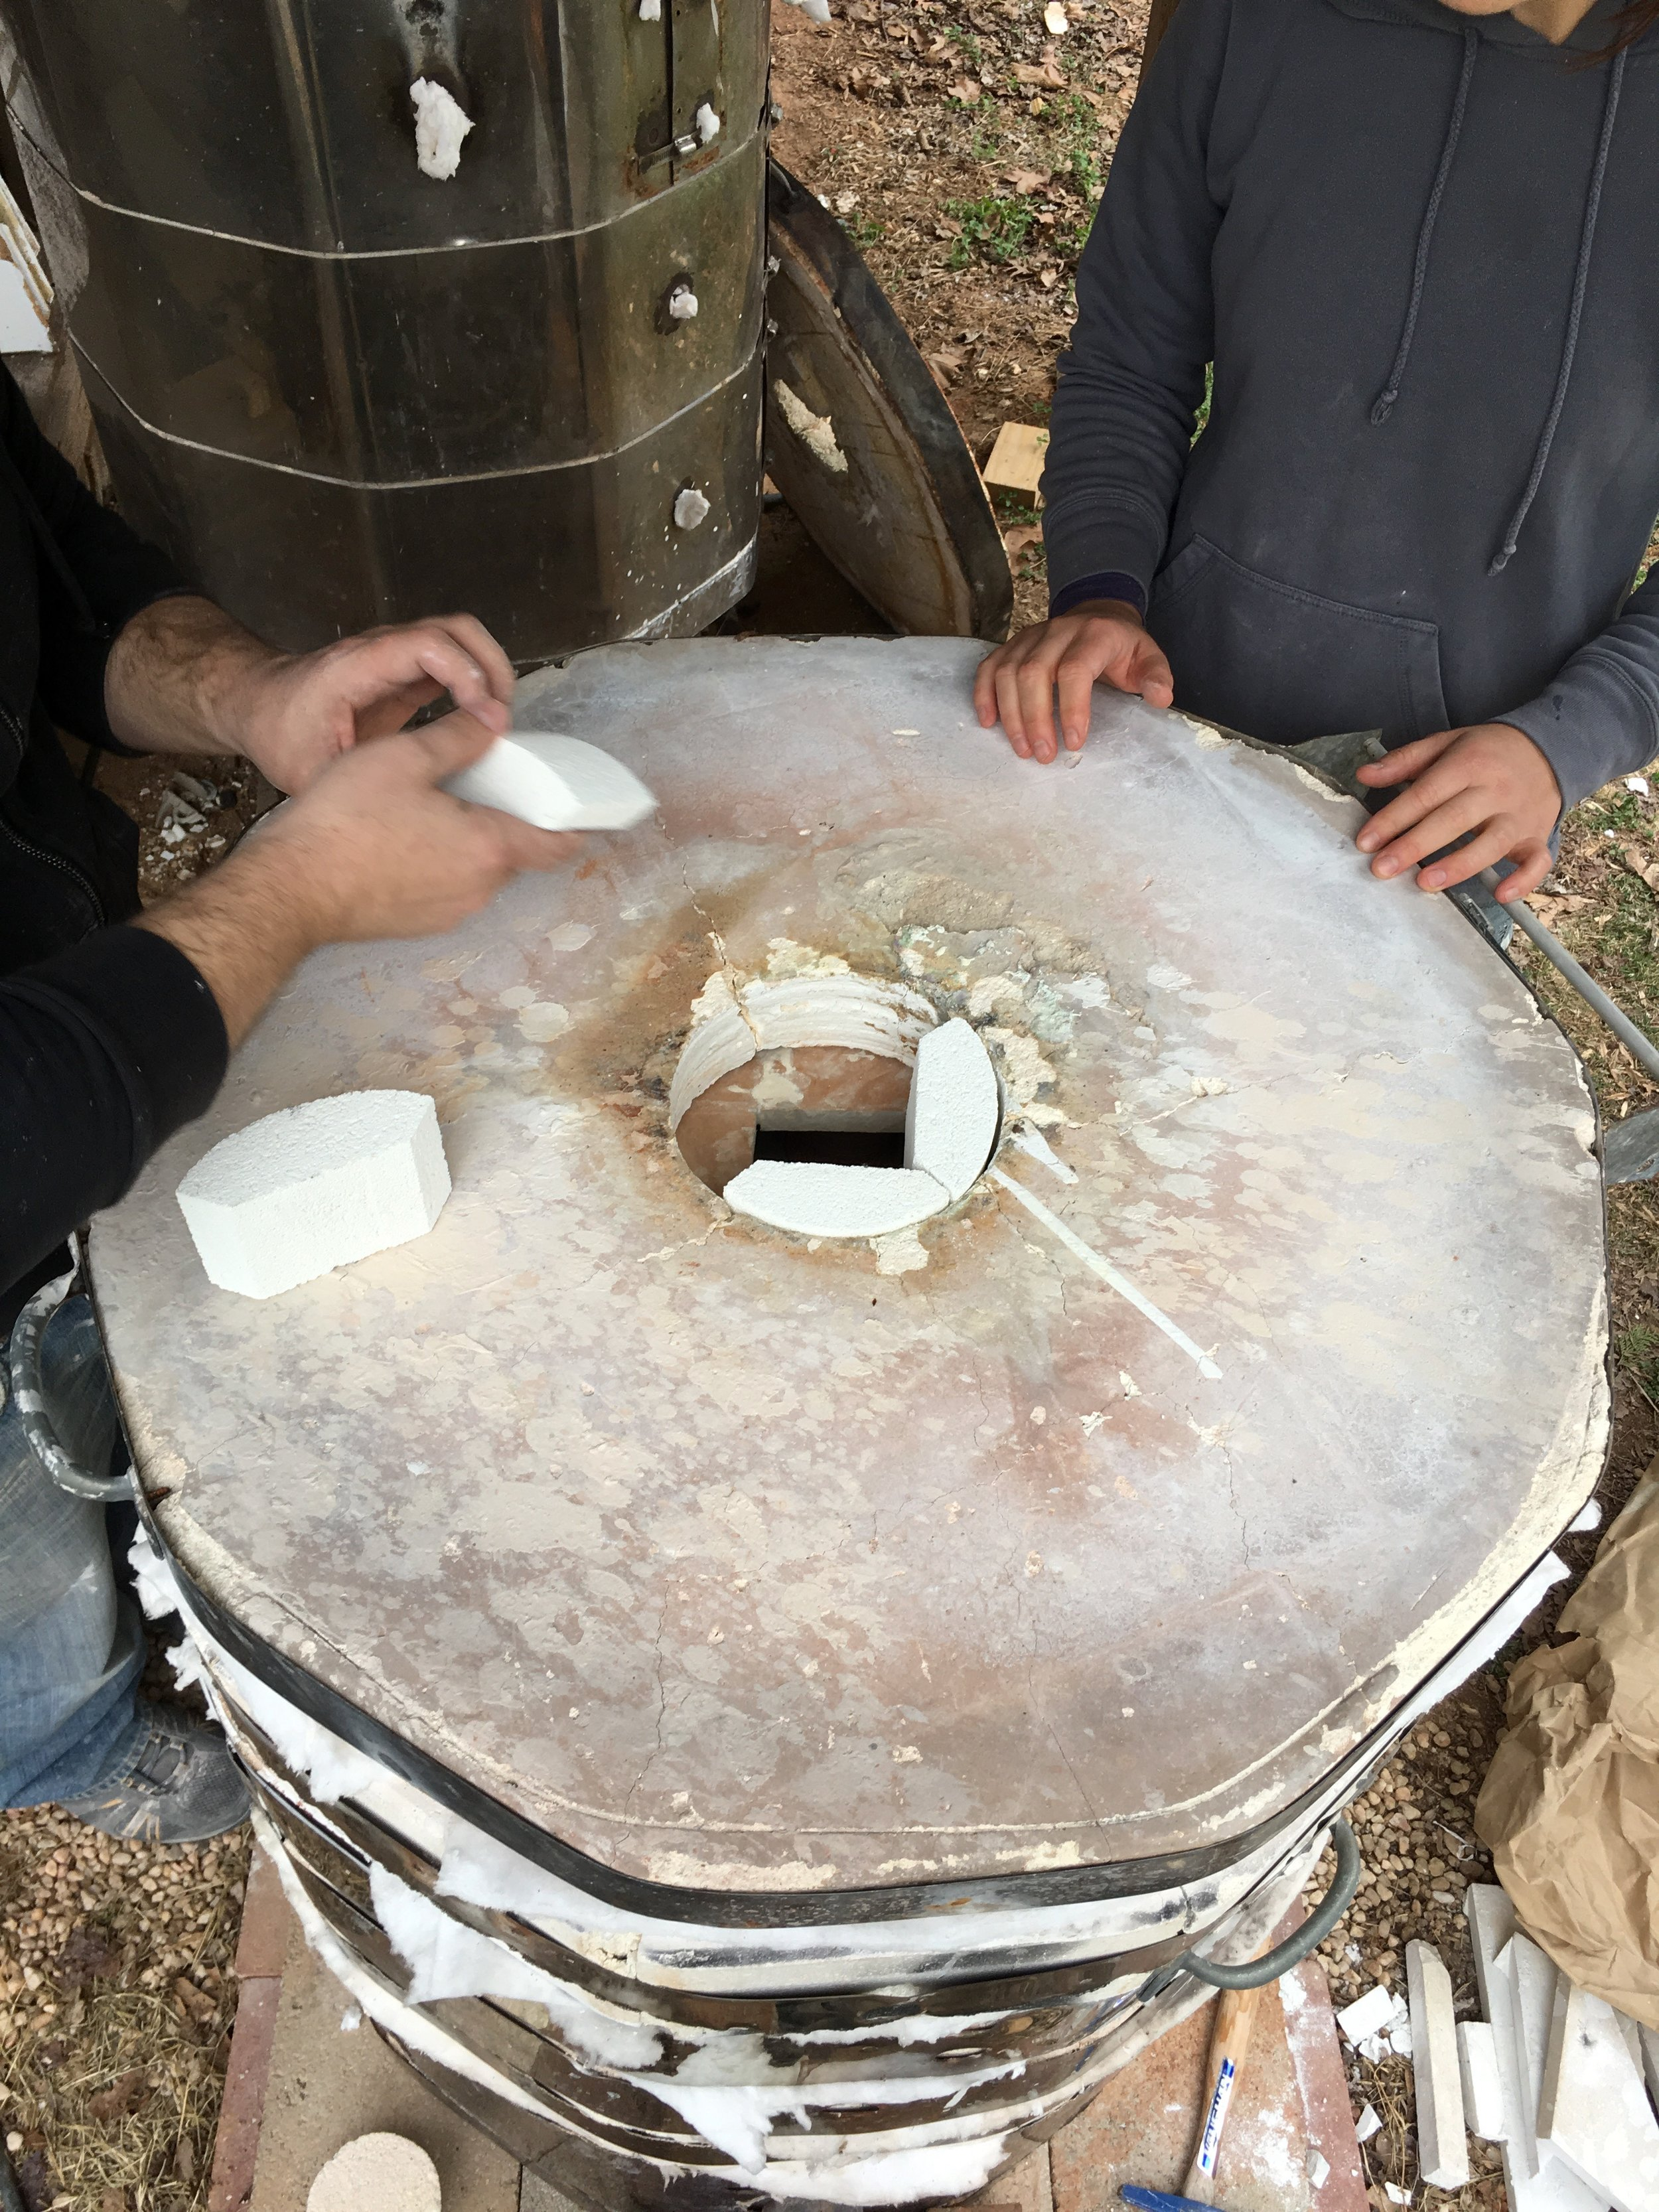 """To close the kiln and protect the soft brick, Jarad custom cut shelves that are placed between the top ring and the lid of the kiln. He puts in """"chips"""", which are made of high alumina soft brick, around the opening at the top of the kiln. A layer of insulating kaowool is put between each of these layers and wherever else there may be a small opening."""